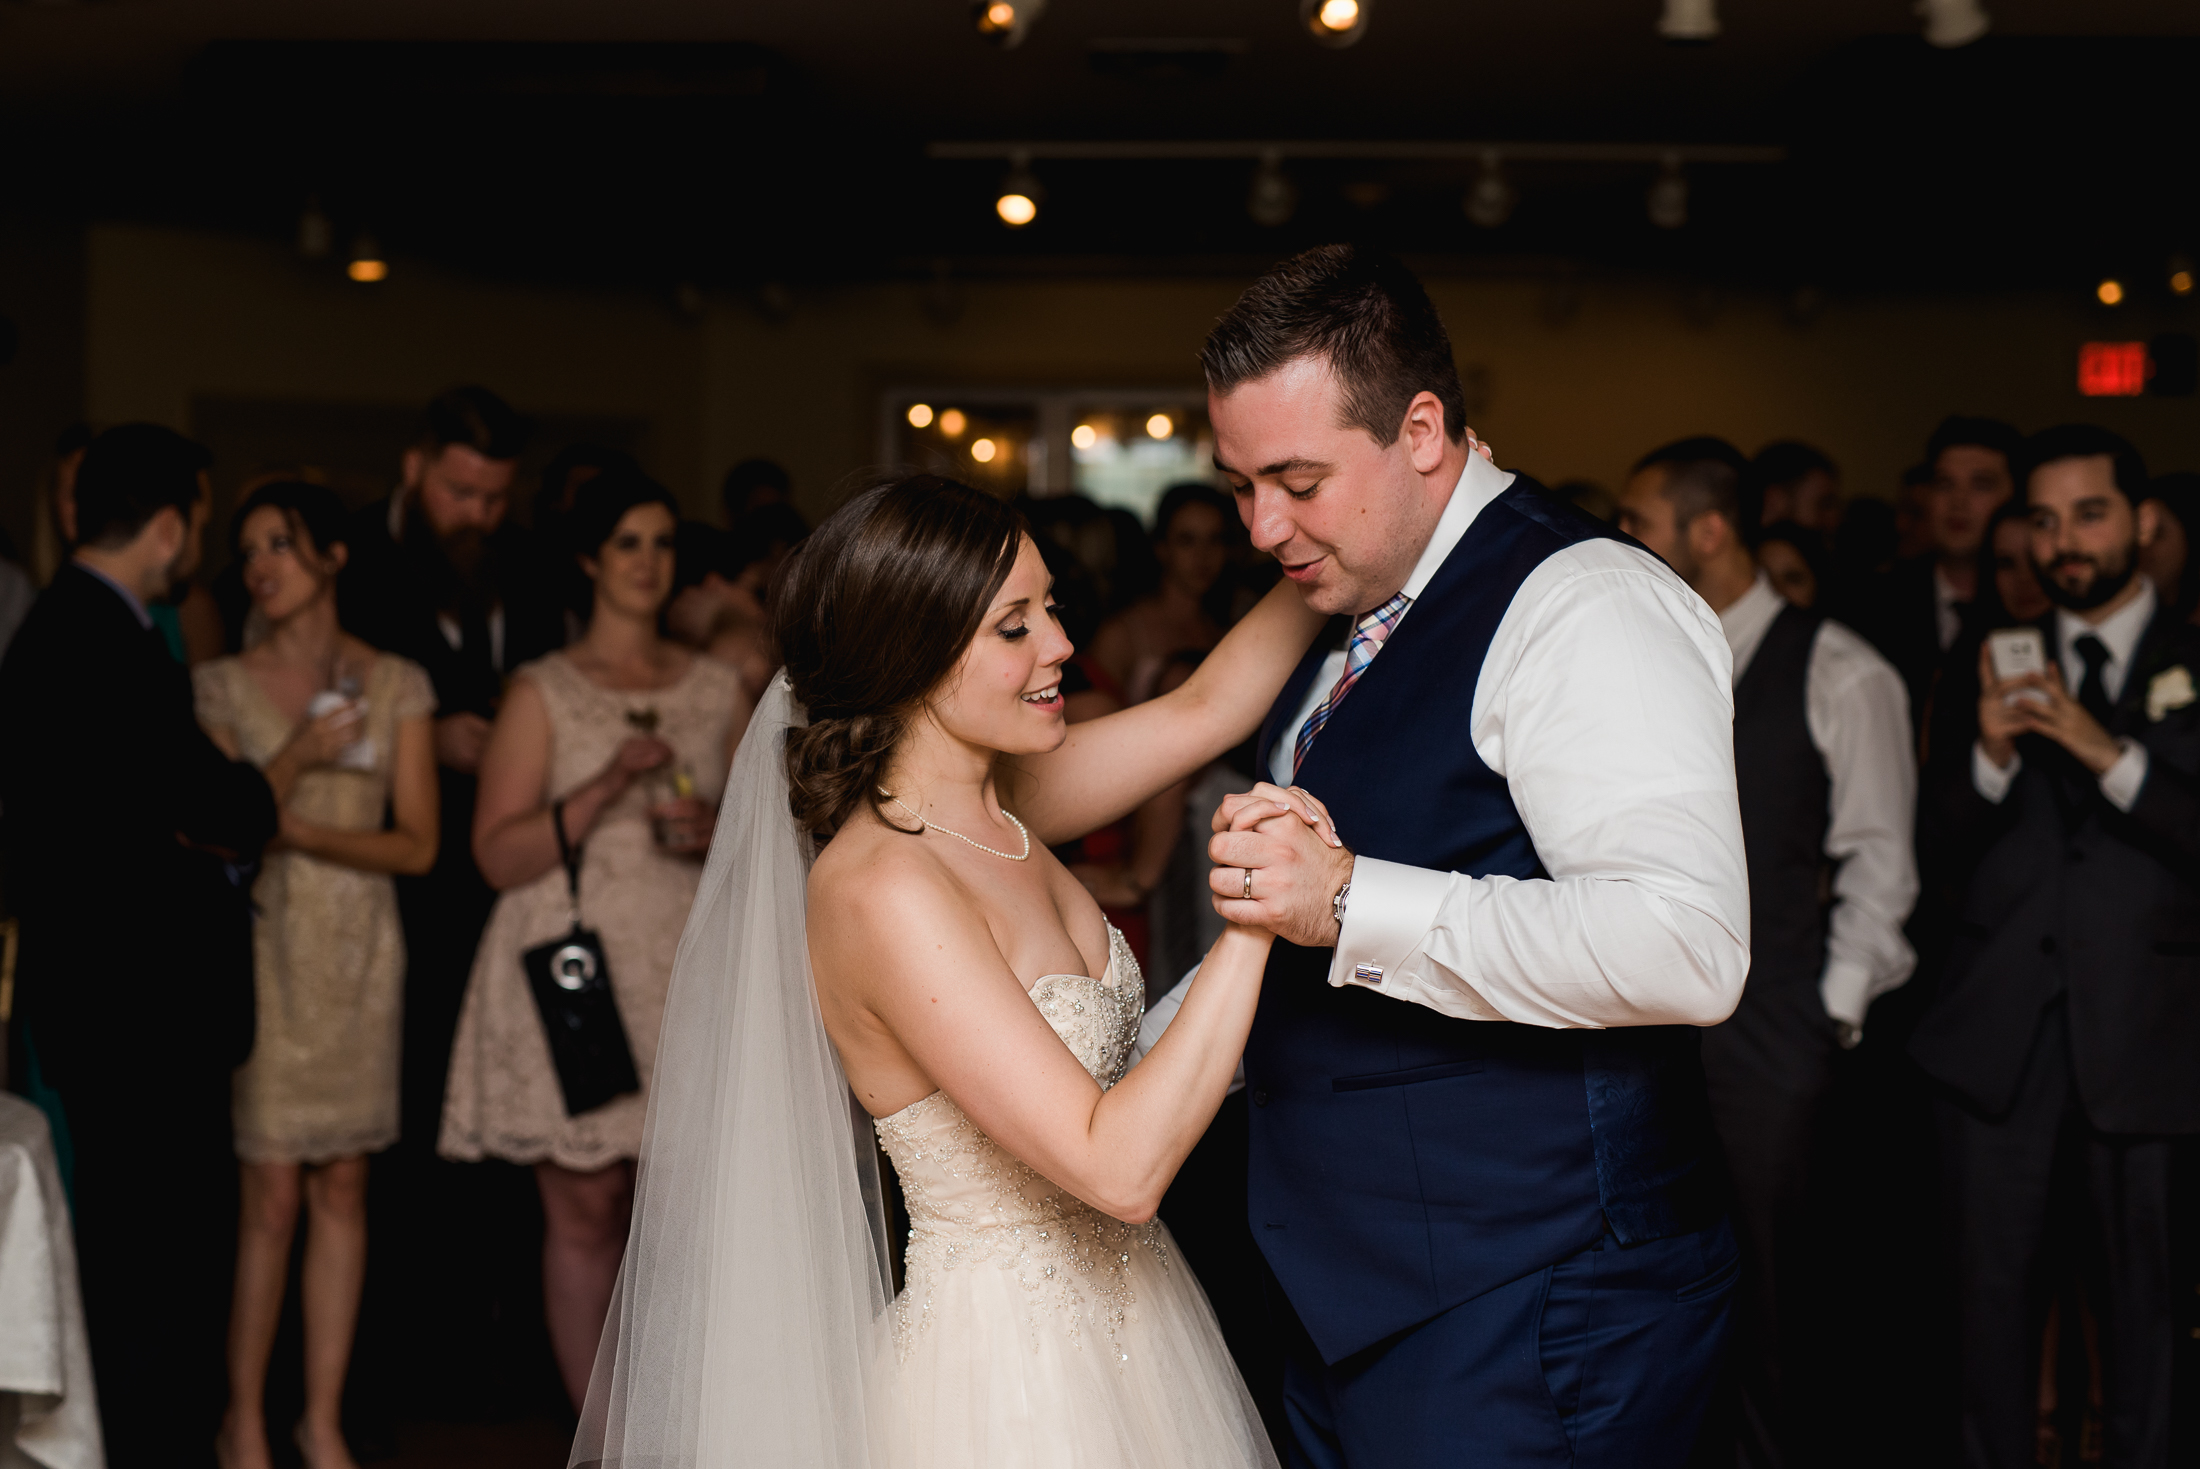 pickering_lakehouse_wedding_durham_region201